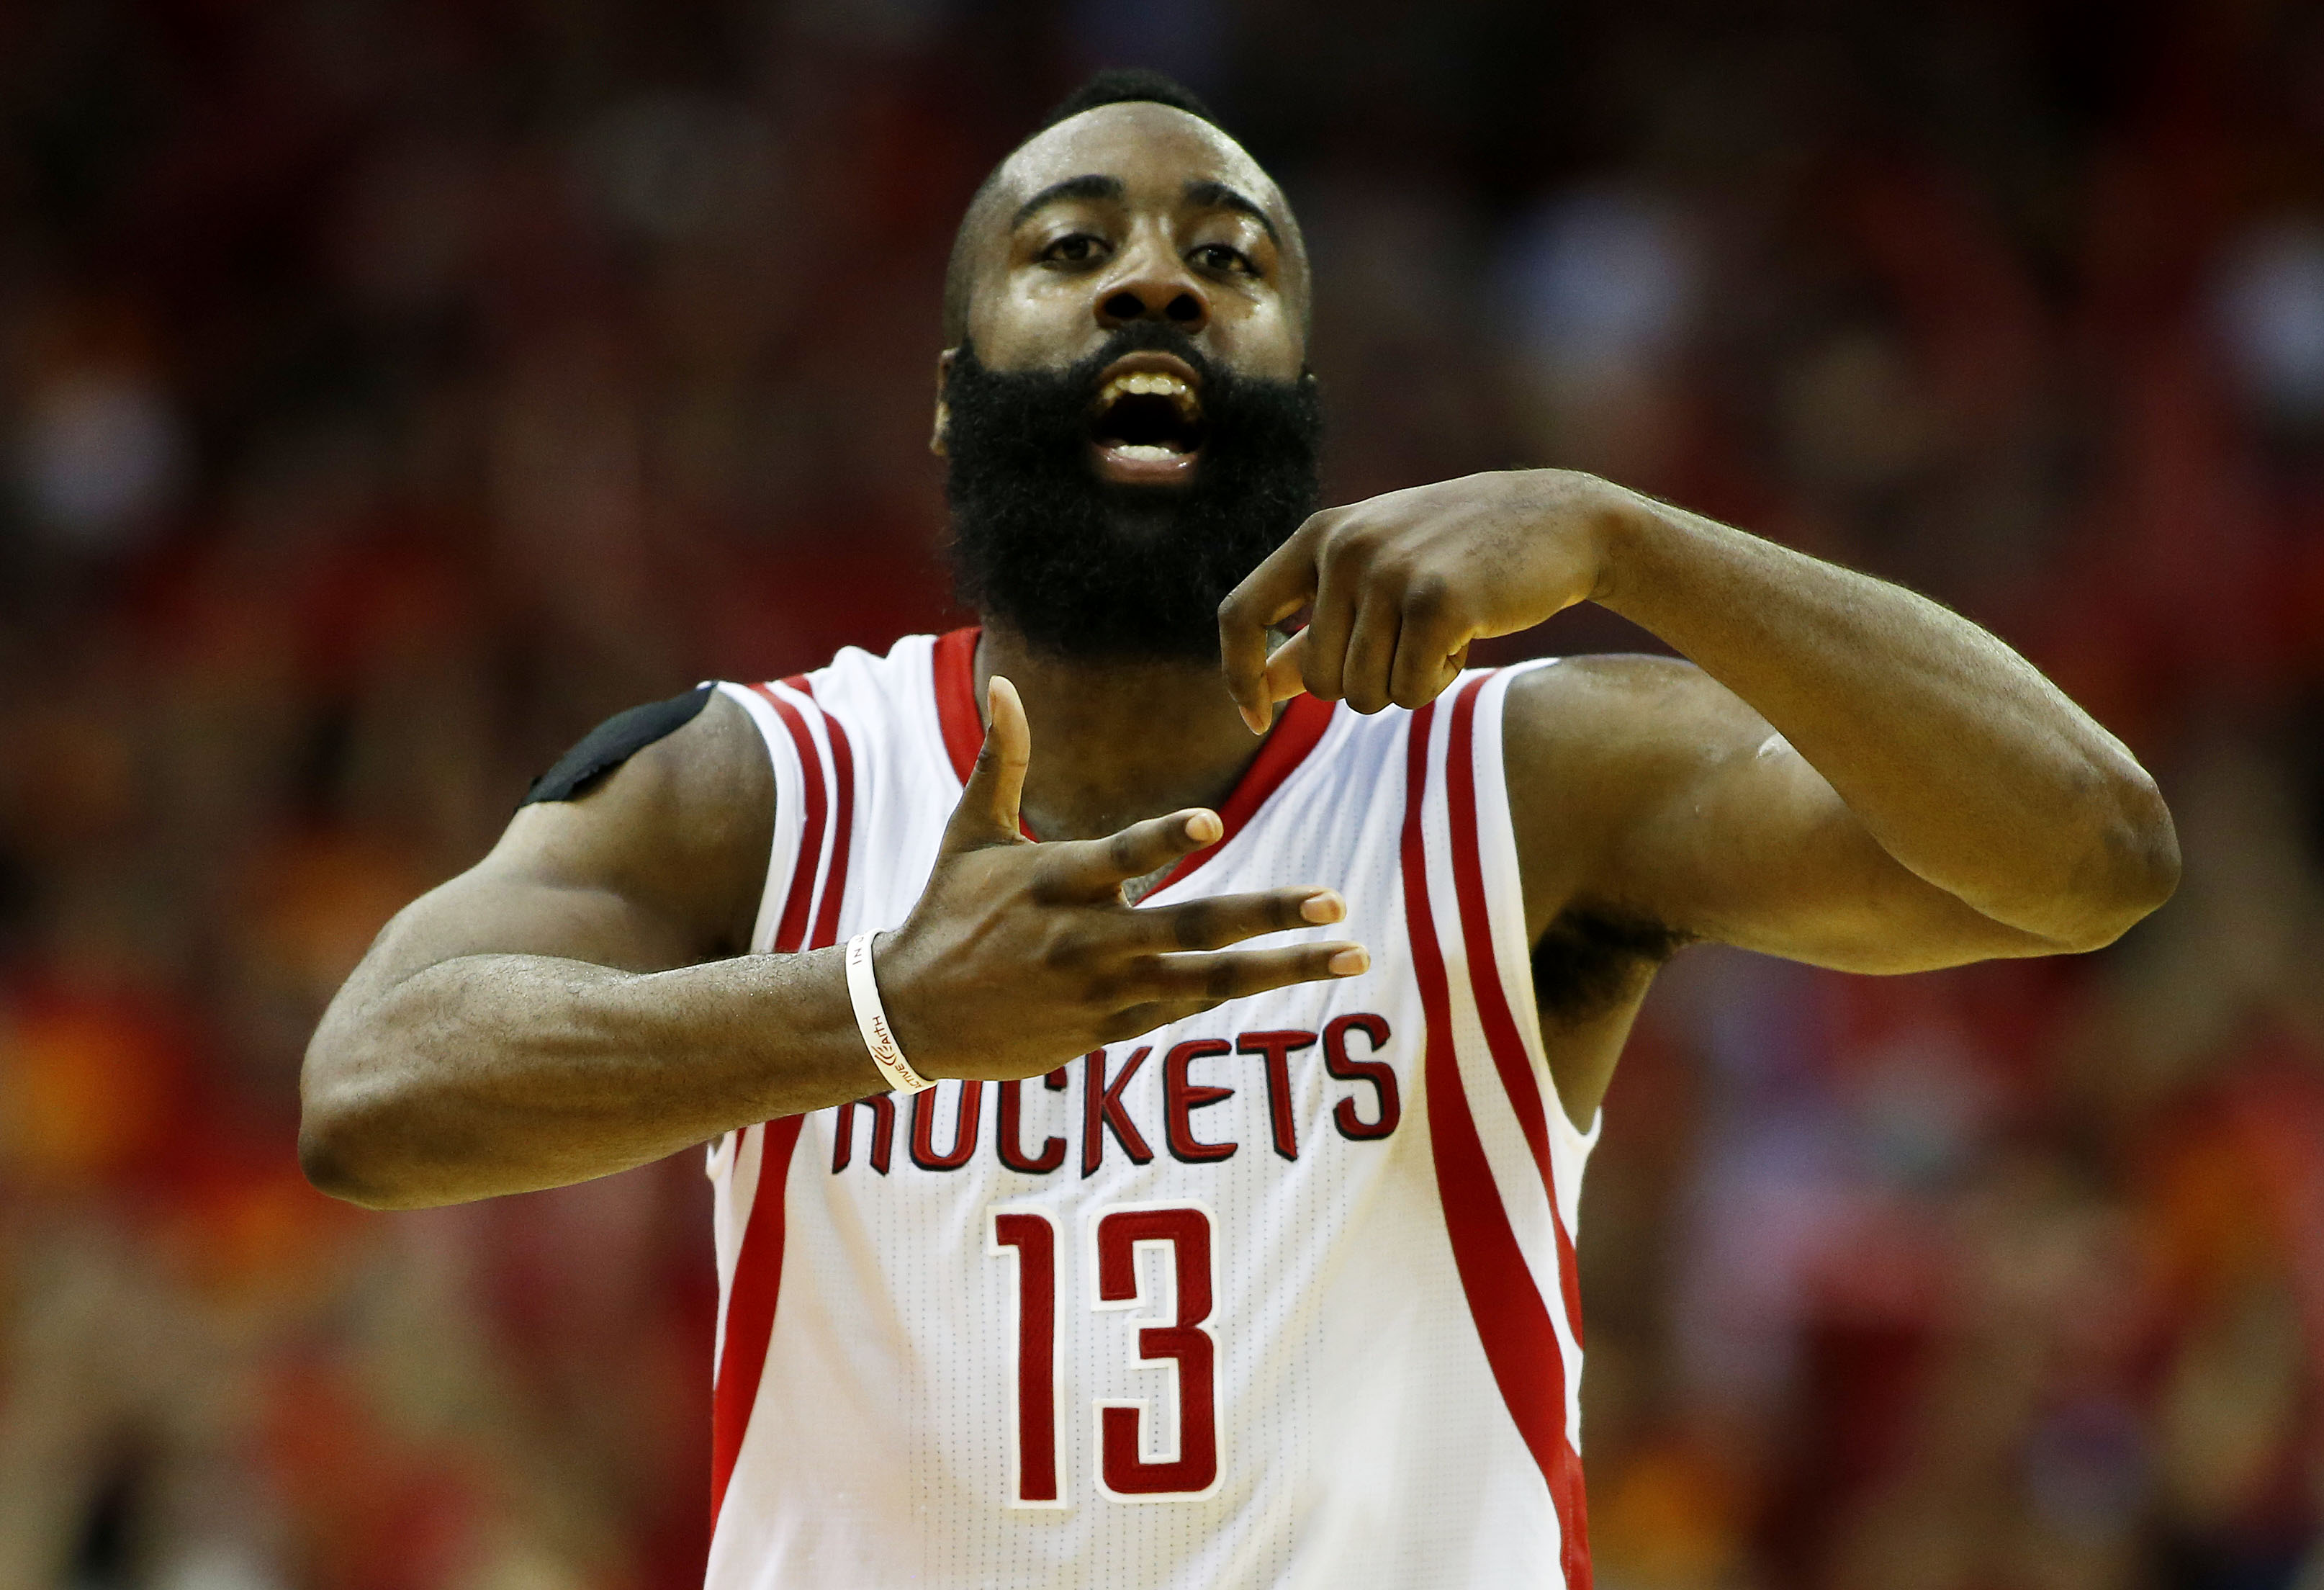 Nba pronostici 29 novembre, Rockets-Mavericks